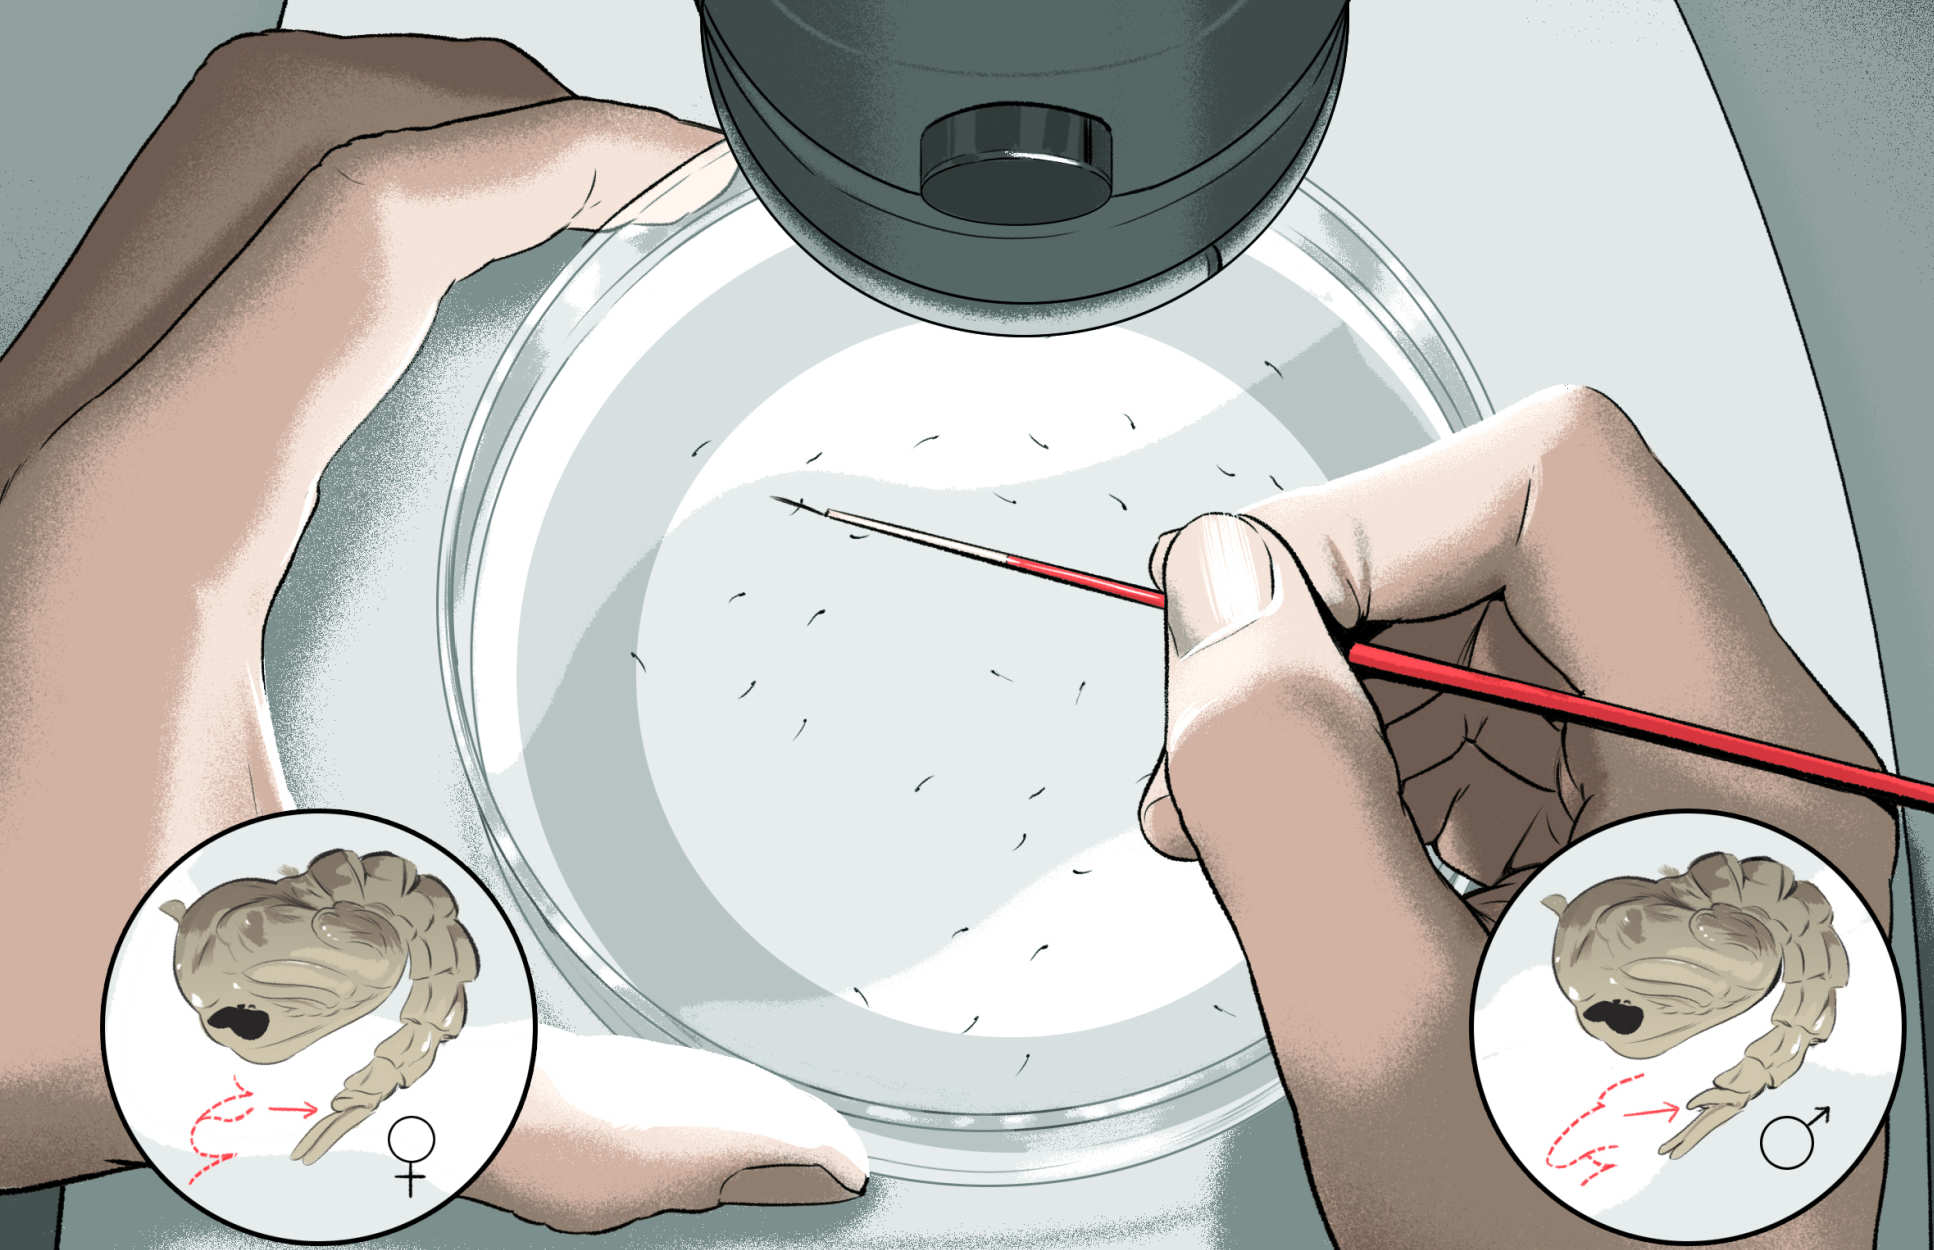 An illustration showing a scientist separating mosquito pupae into males and females under a microscope